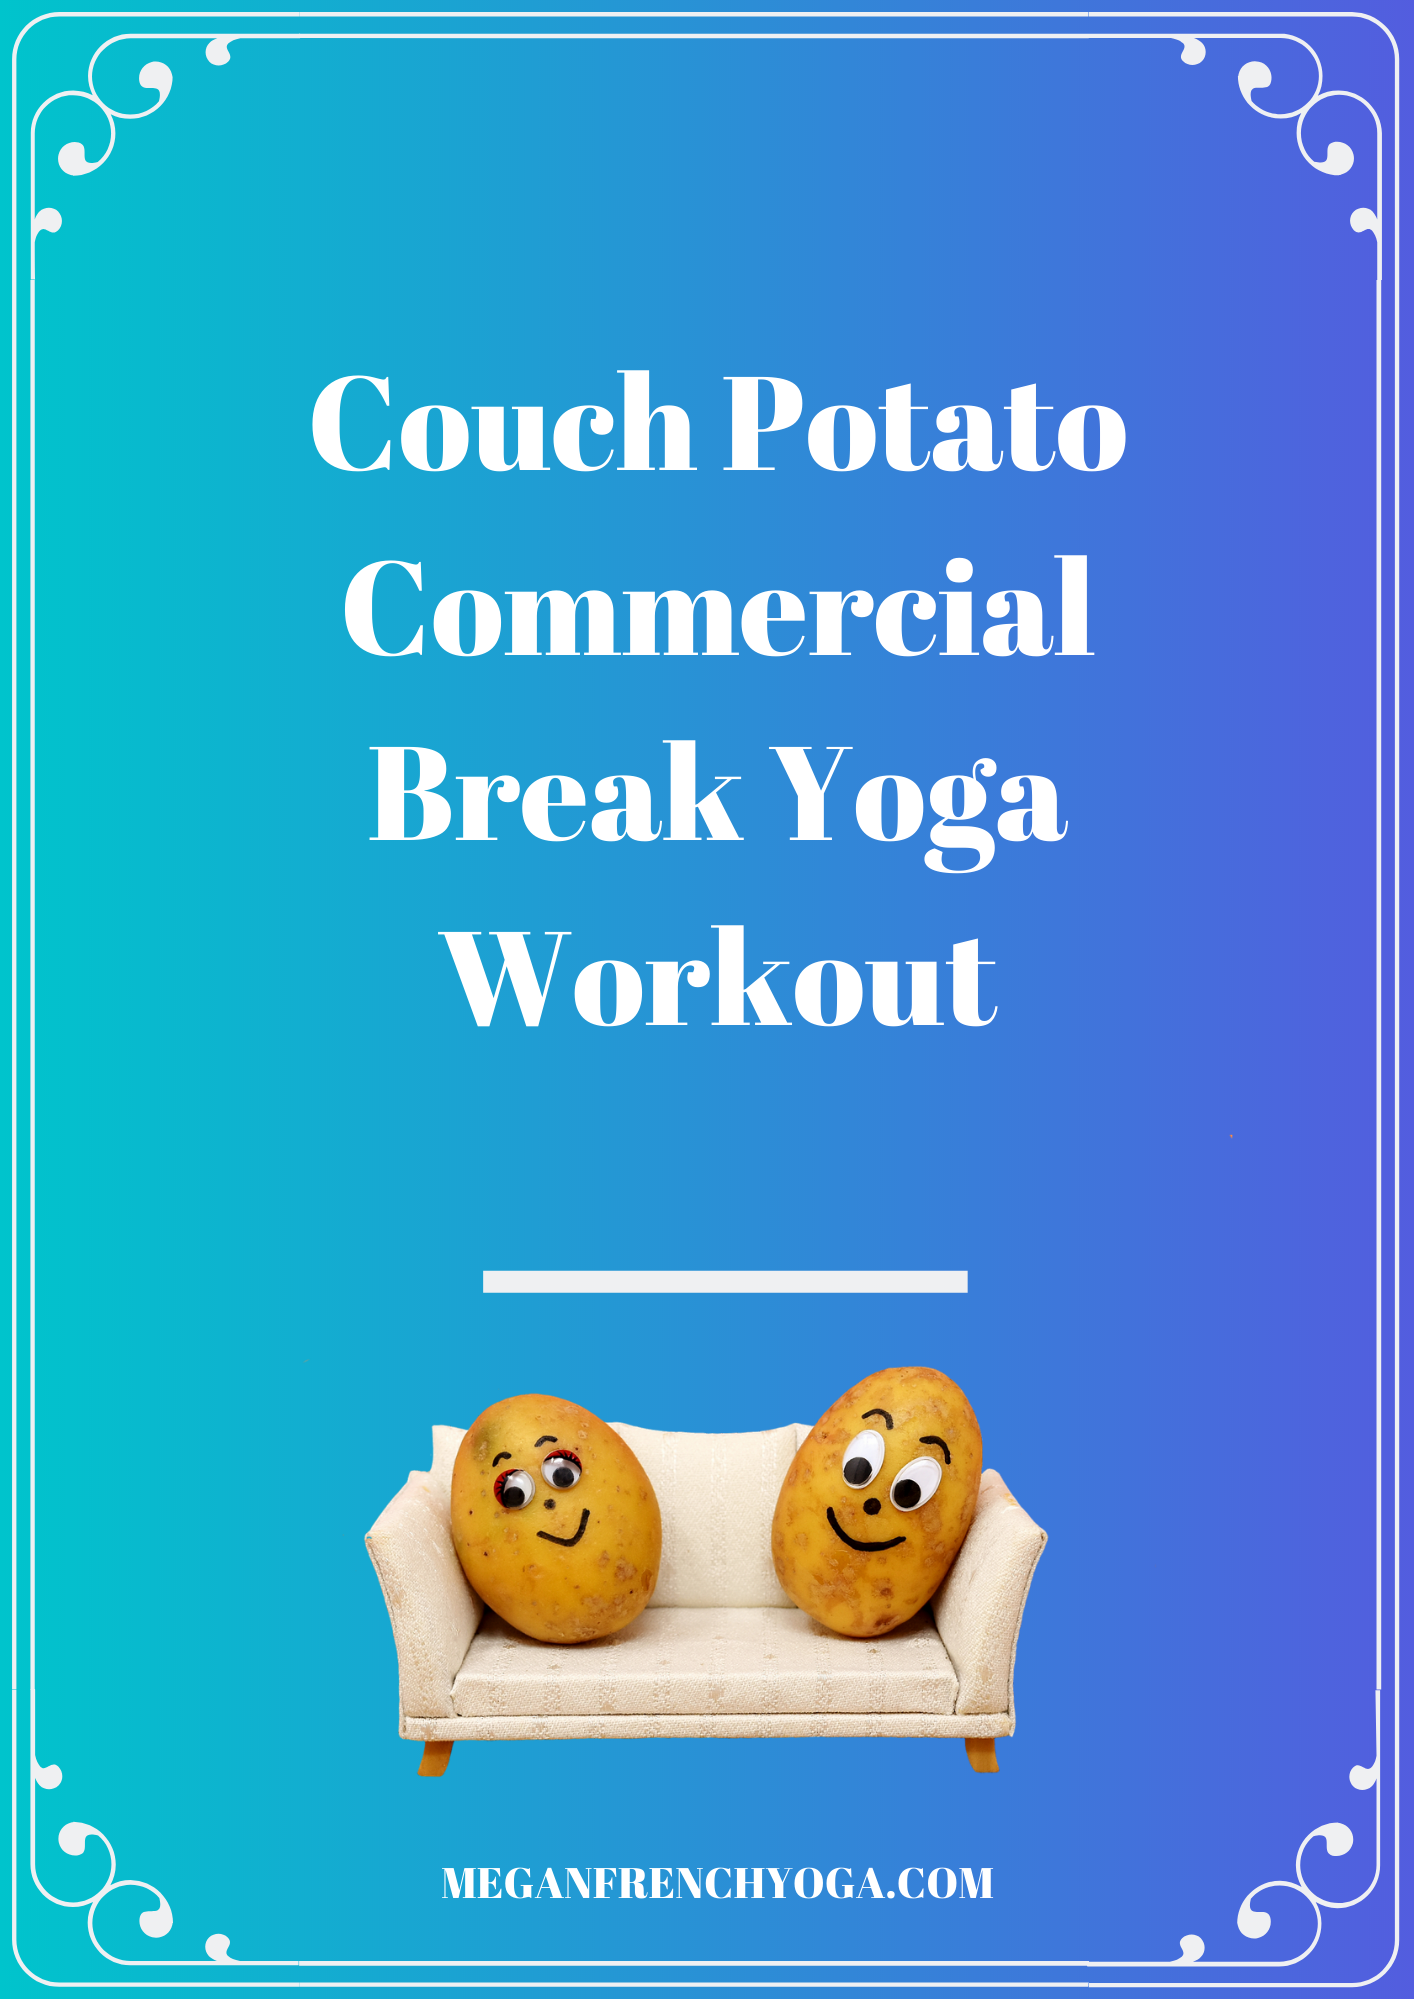 Couch Potato Yoga Workout Quick 2 Minute Yoga Sequences To Get